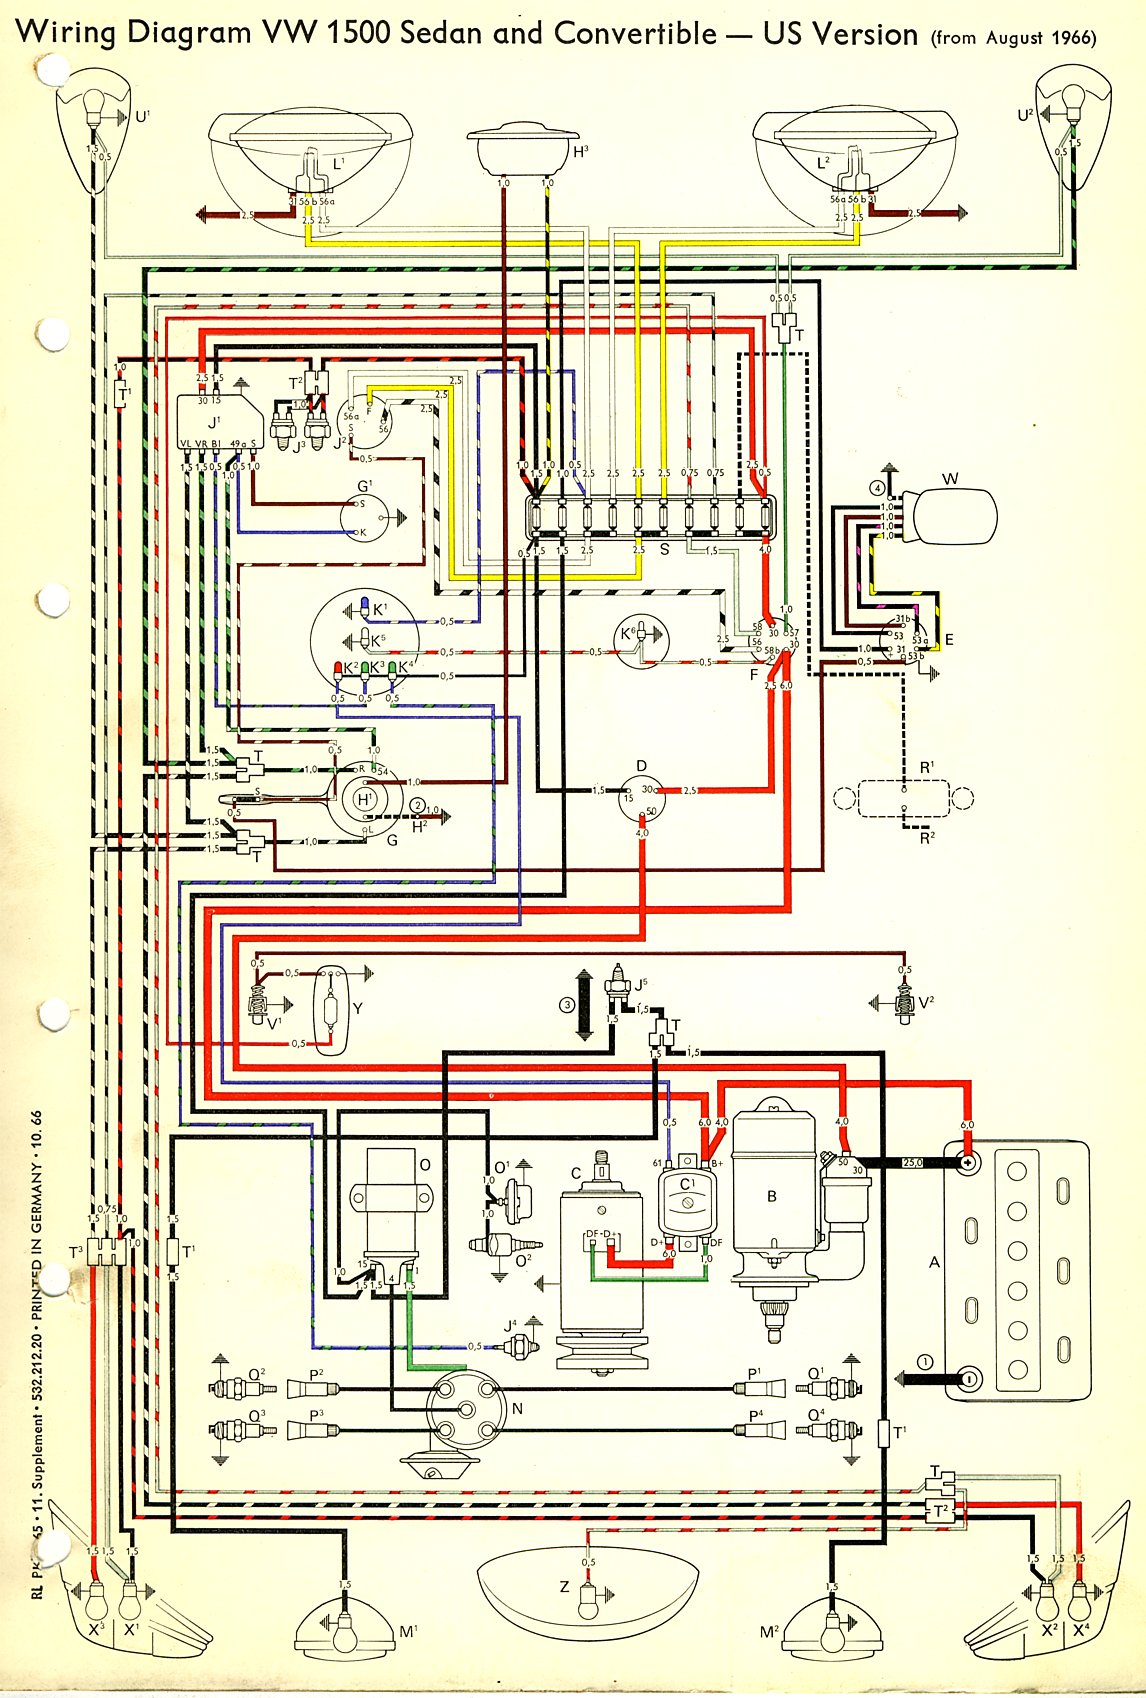 67 Vw Wiring Diagram Wiring Diagram Database